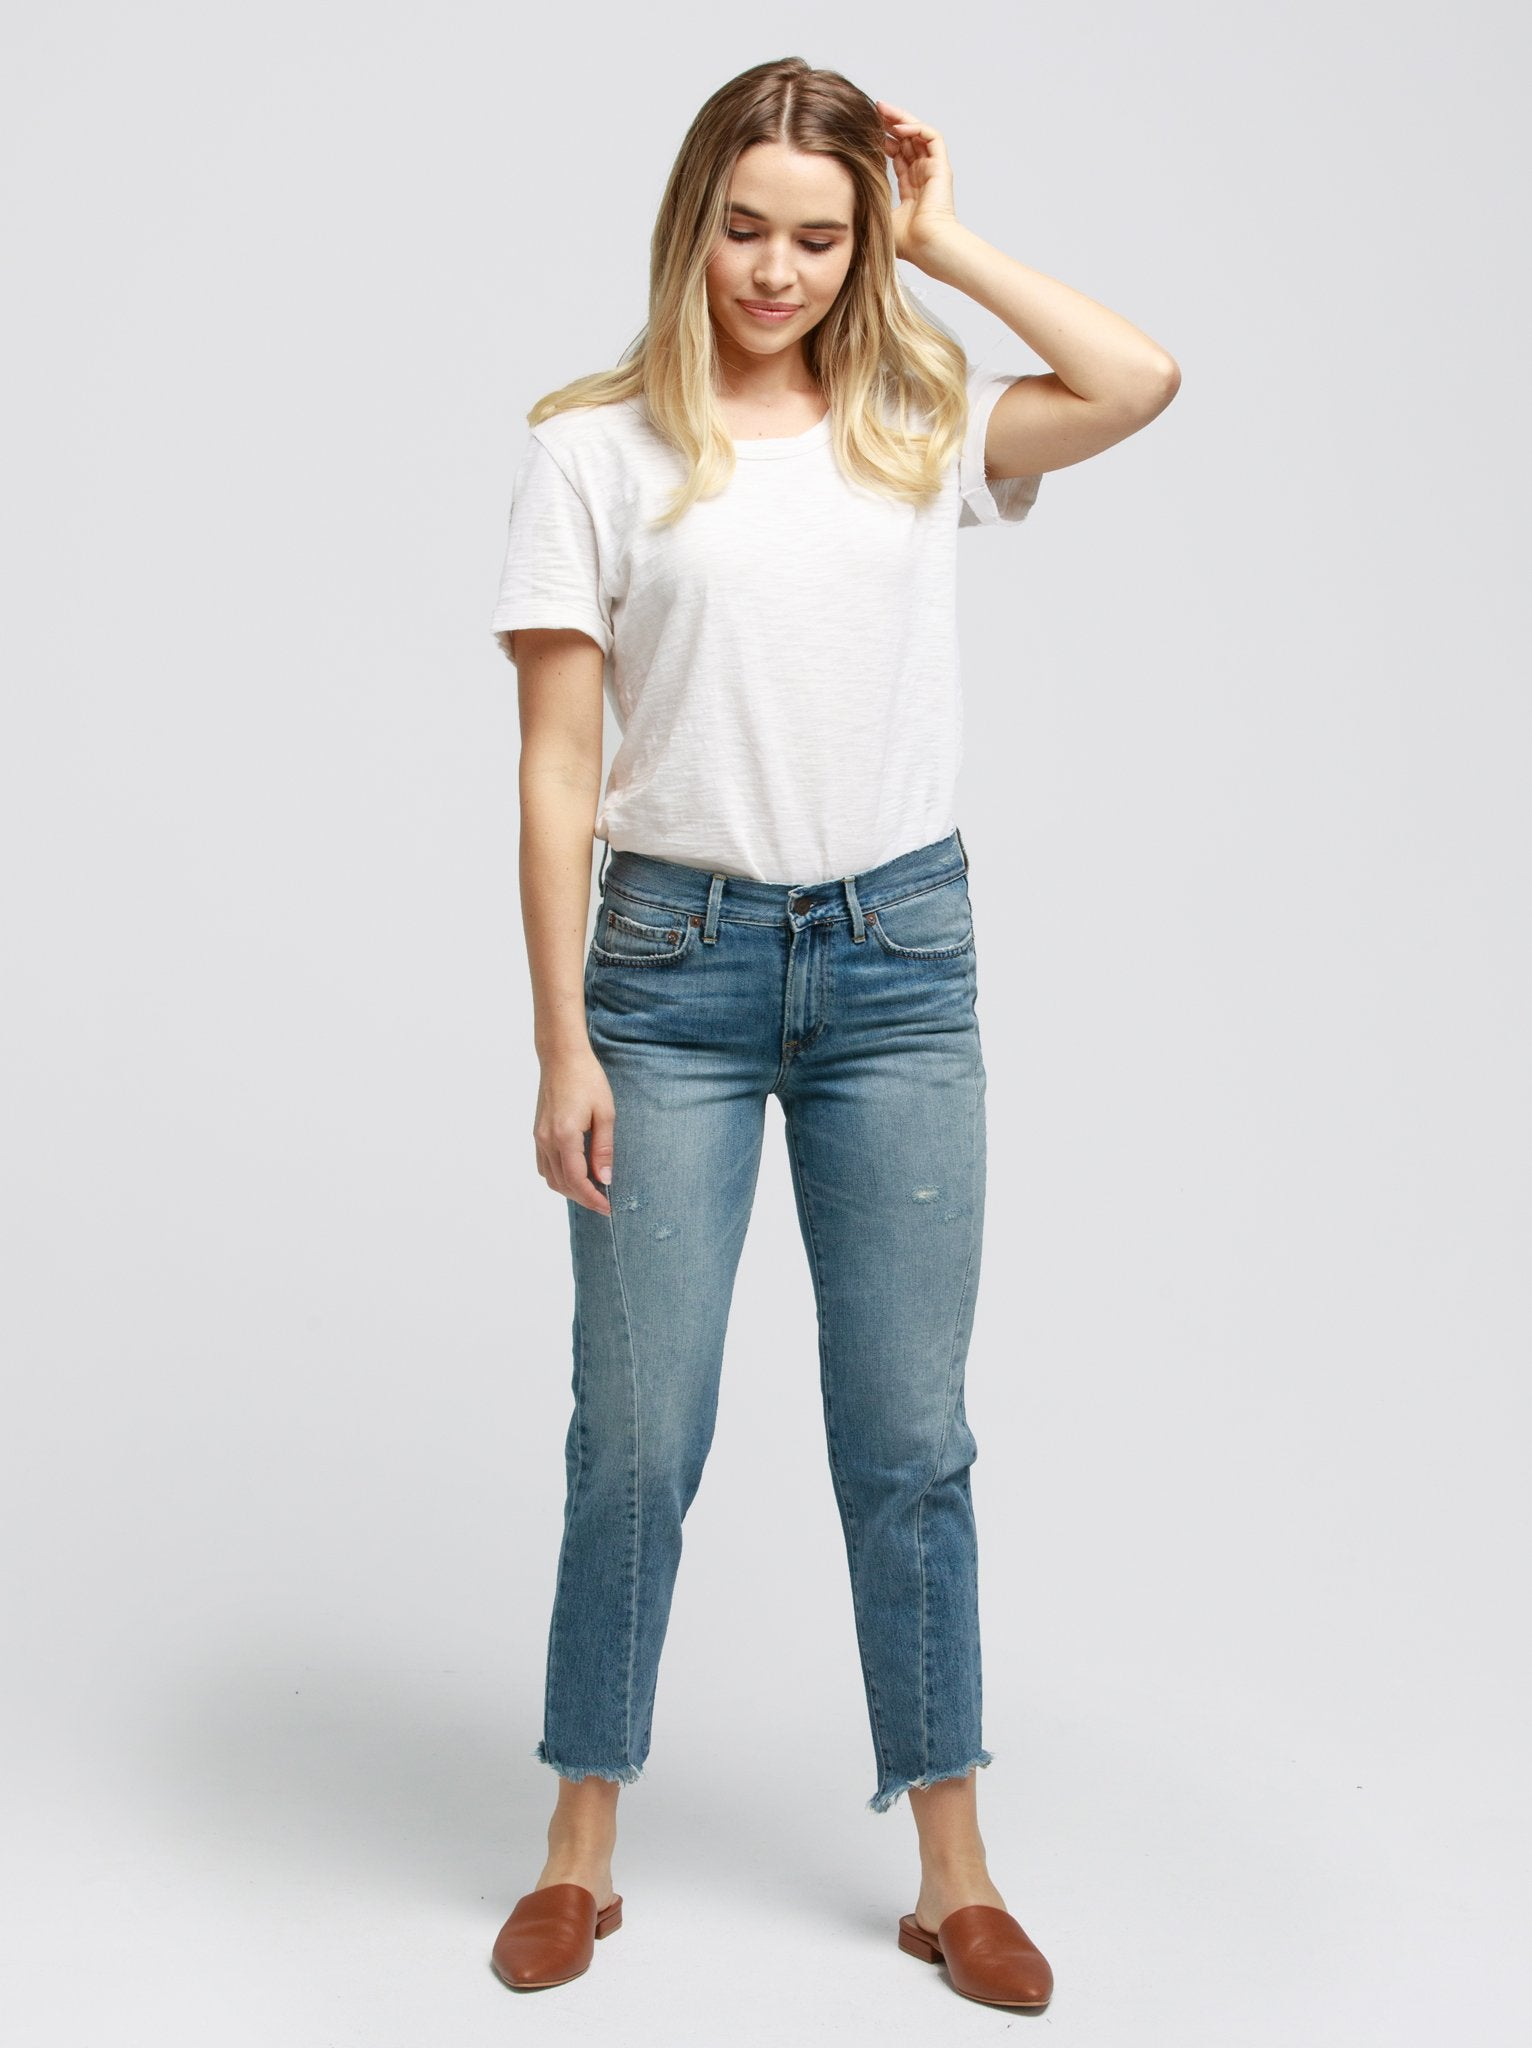 The Sandra Seam Jean